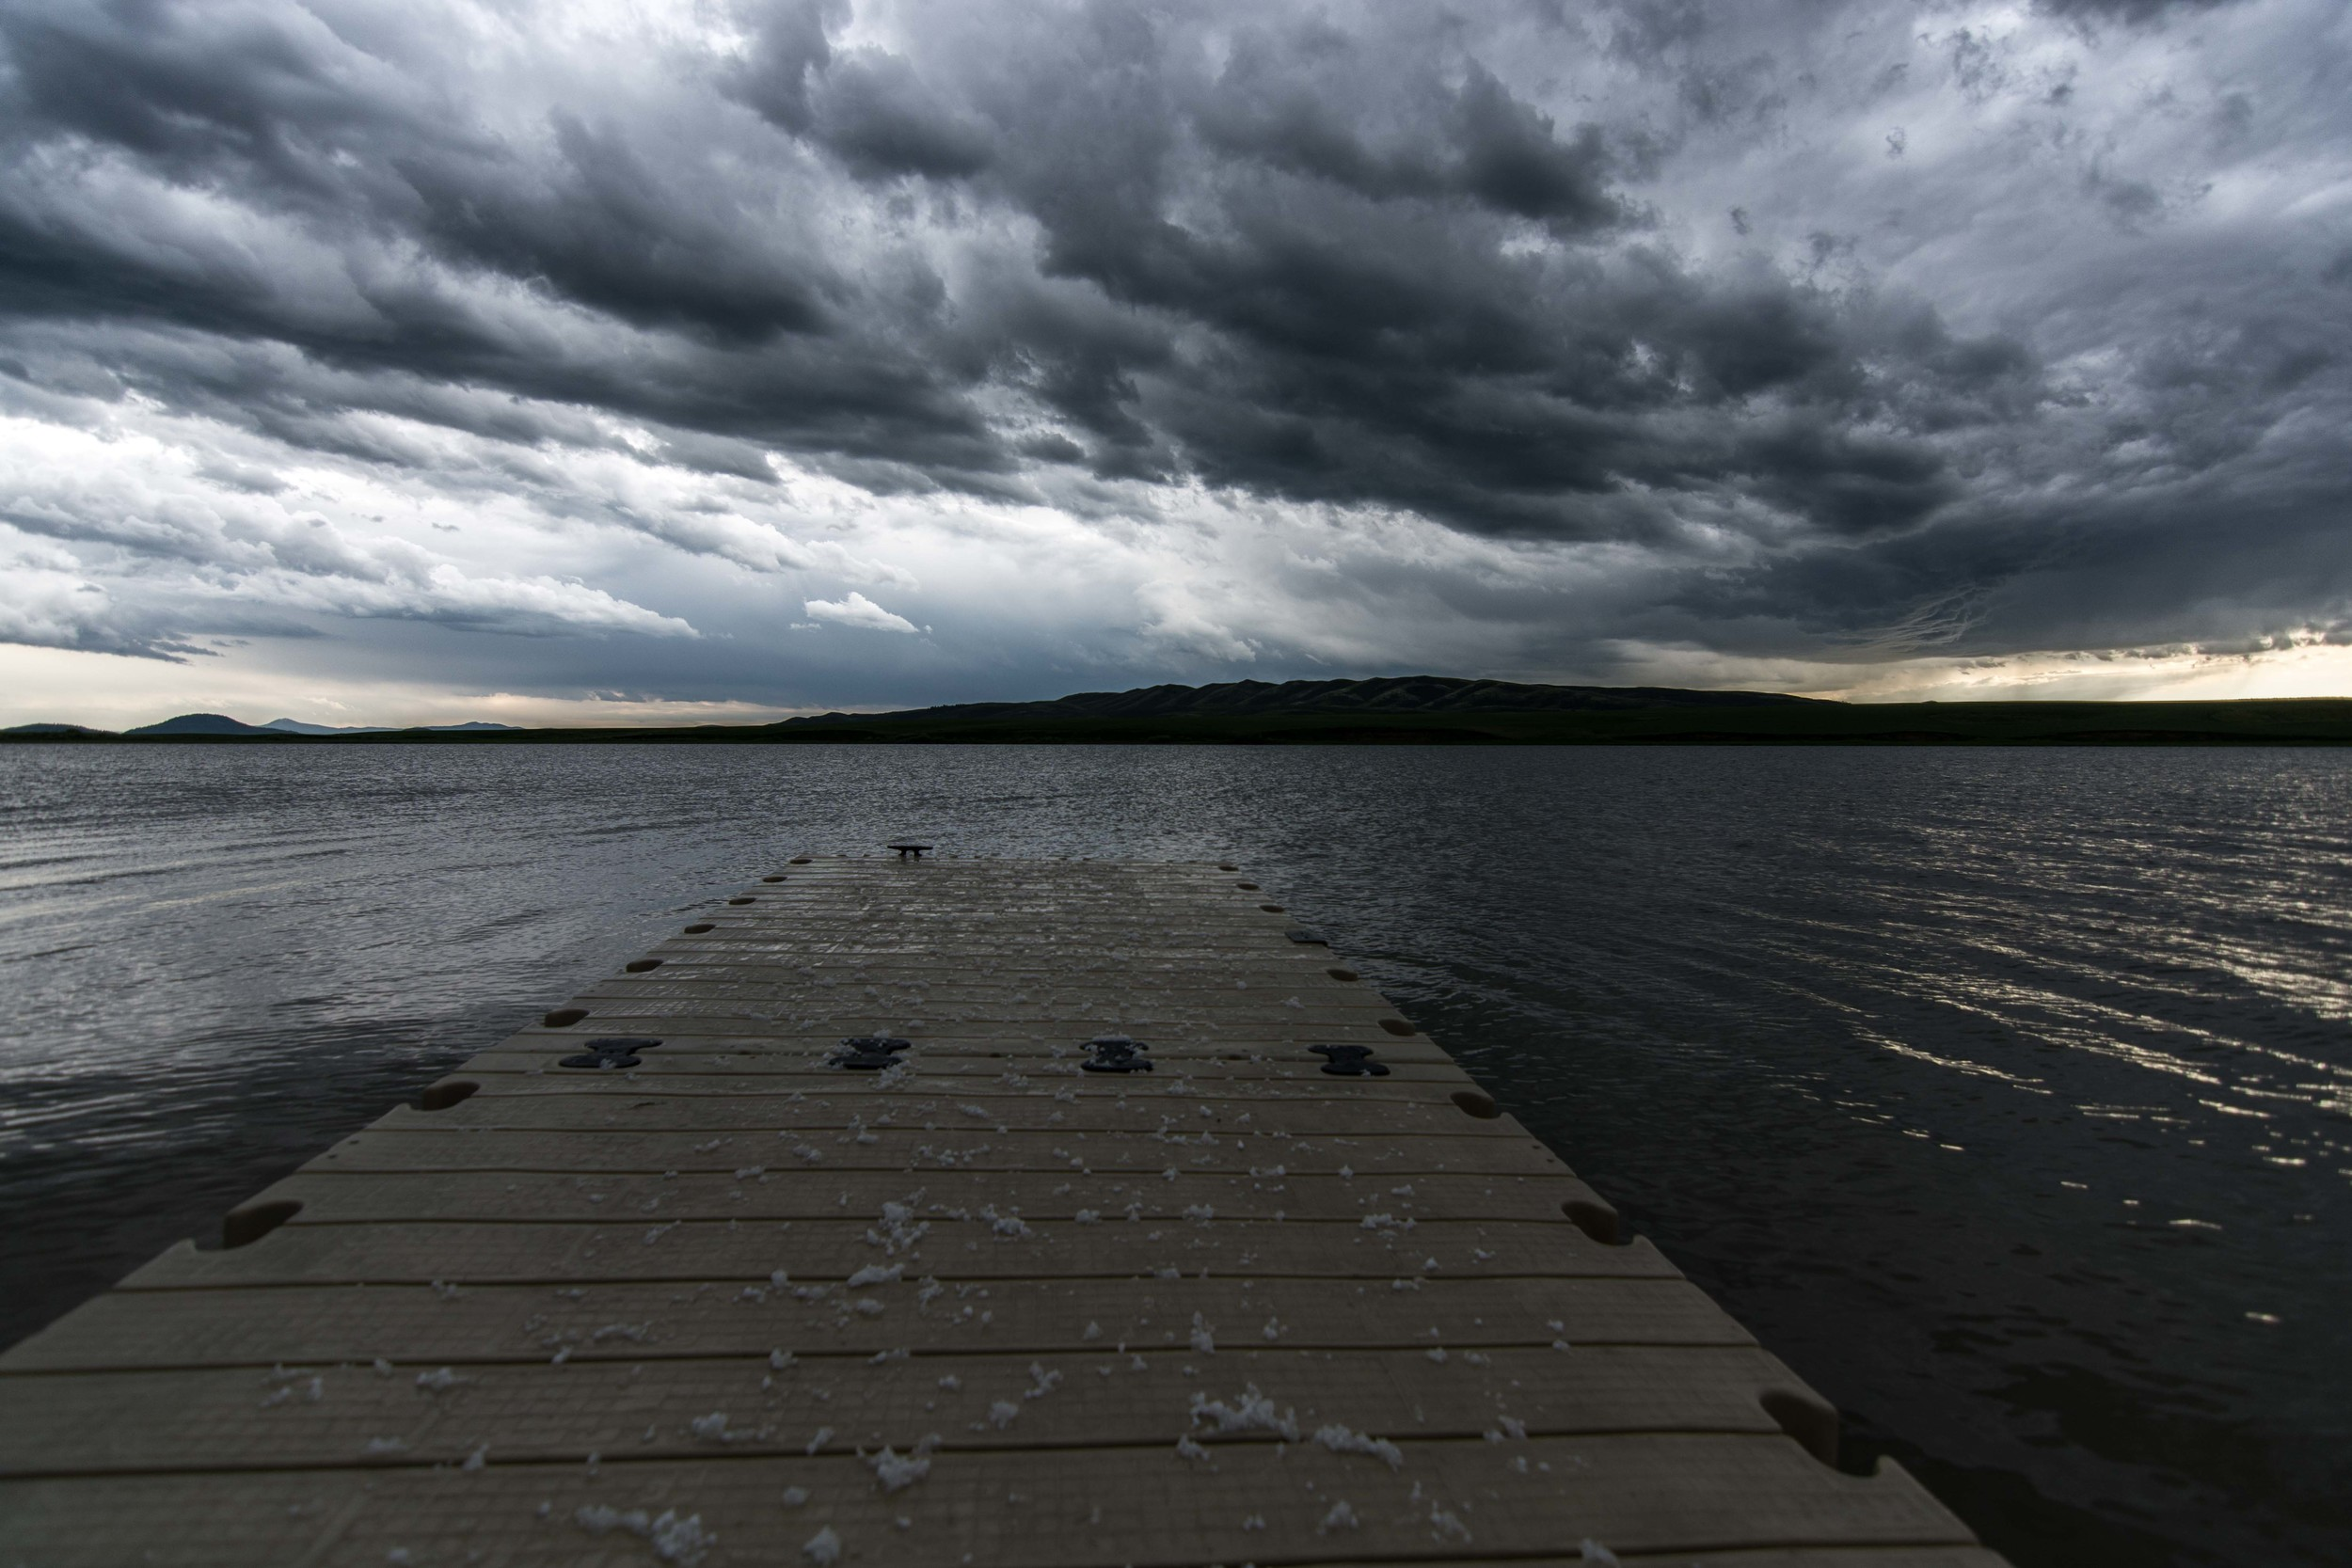 After the Storm in the Blackfoot Reservoir